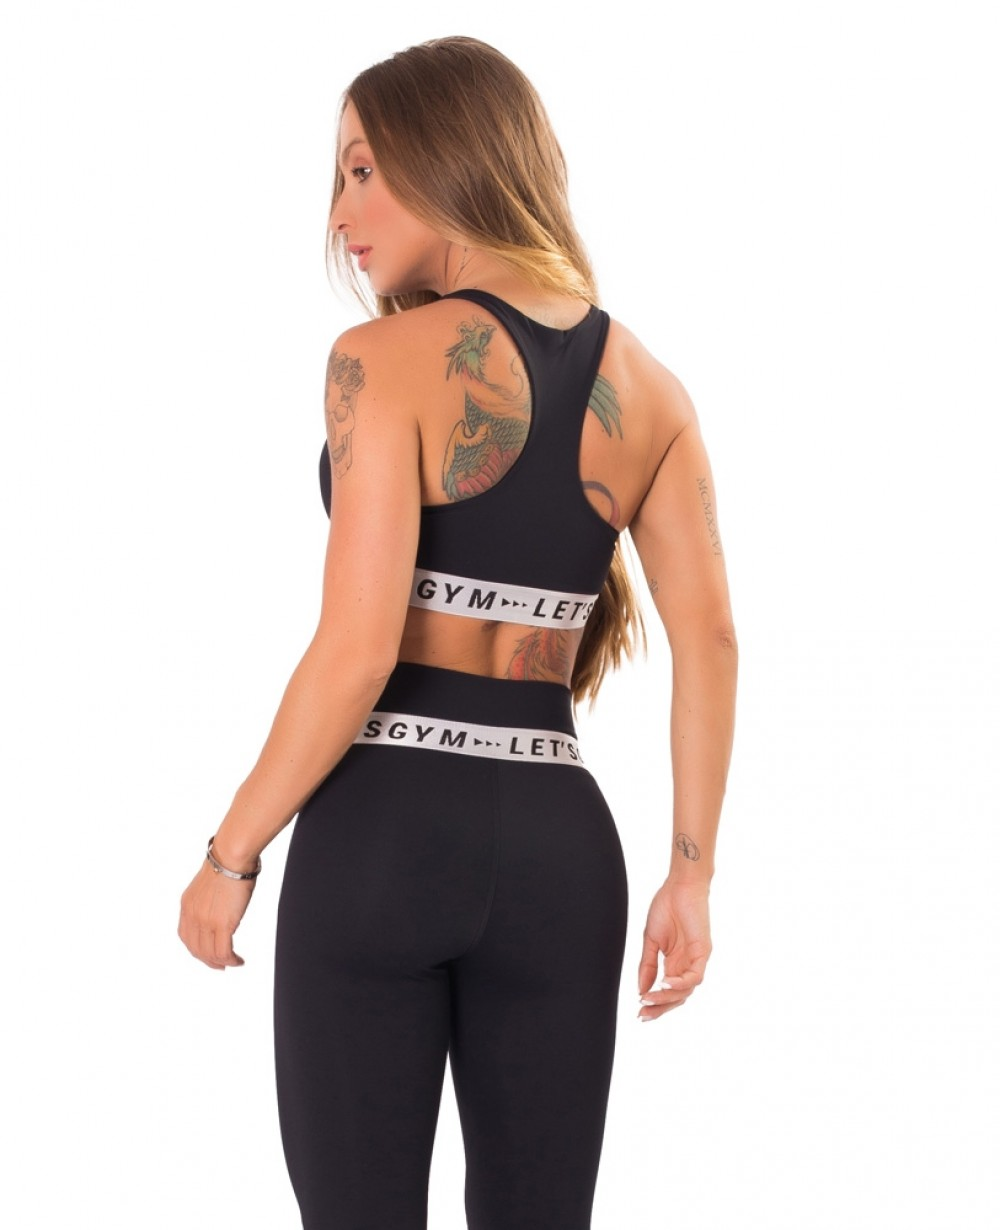 Top Let'sGym Premium Chic